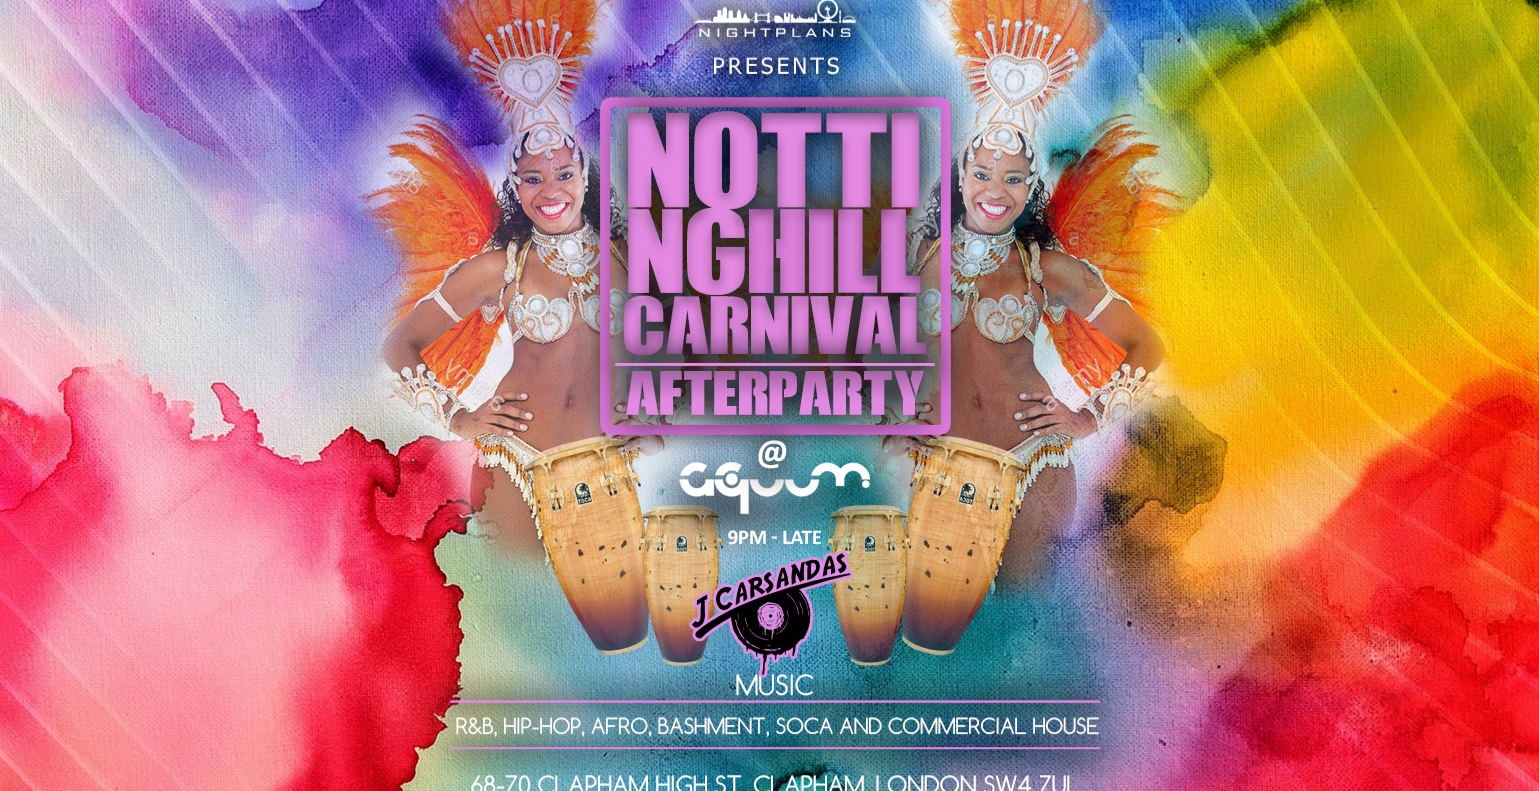 Notting Hill Carnival Afterparty